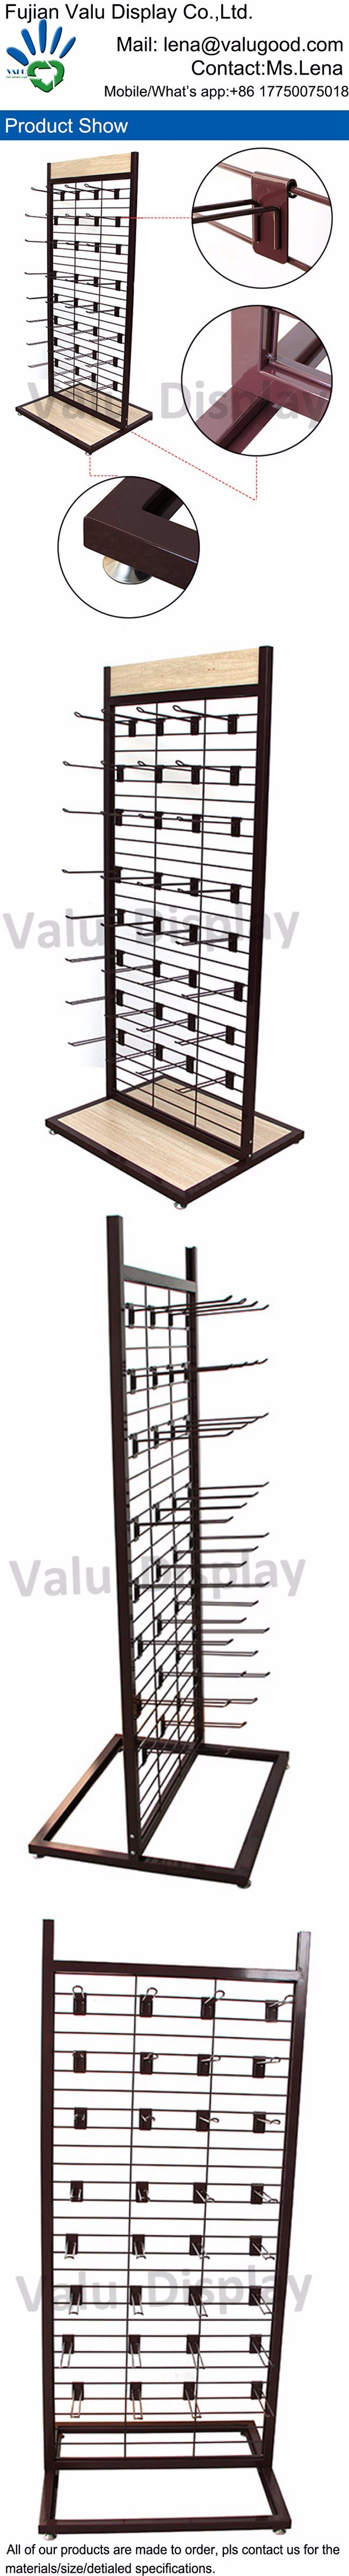 stand wire fixture snacks countertop snack displays rack tier display tray black pin confection bakery